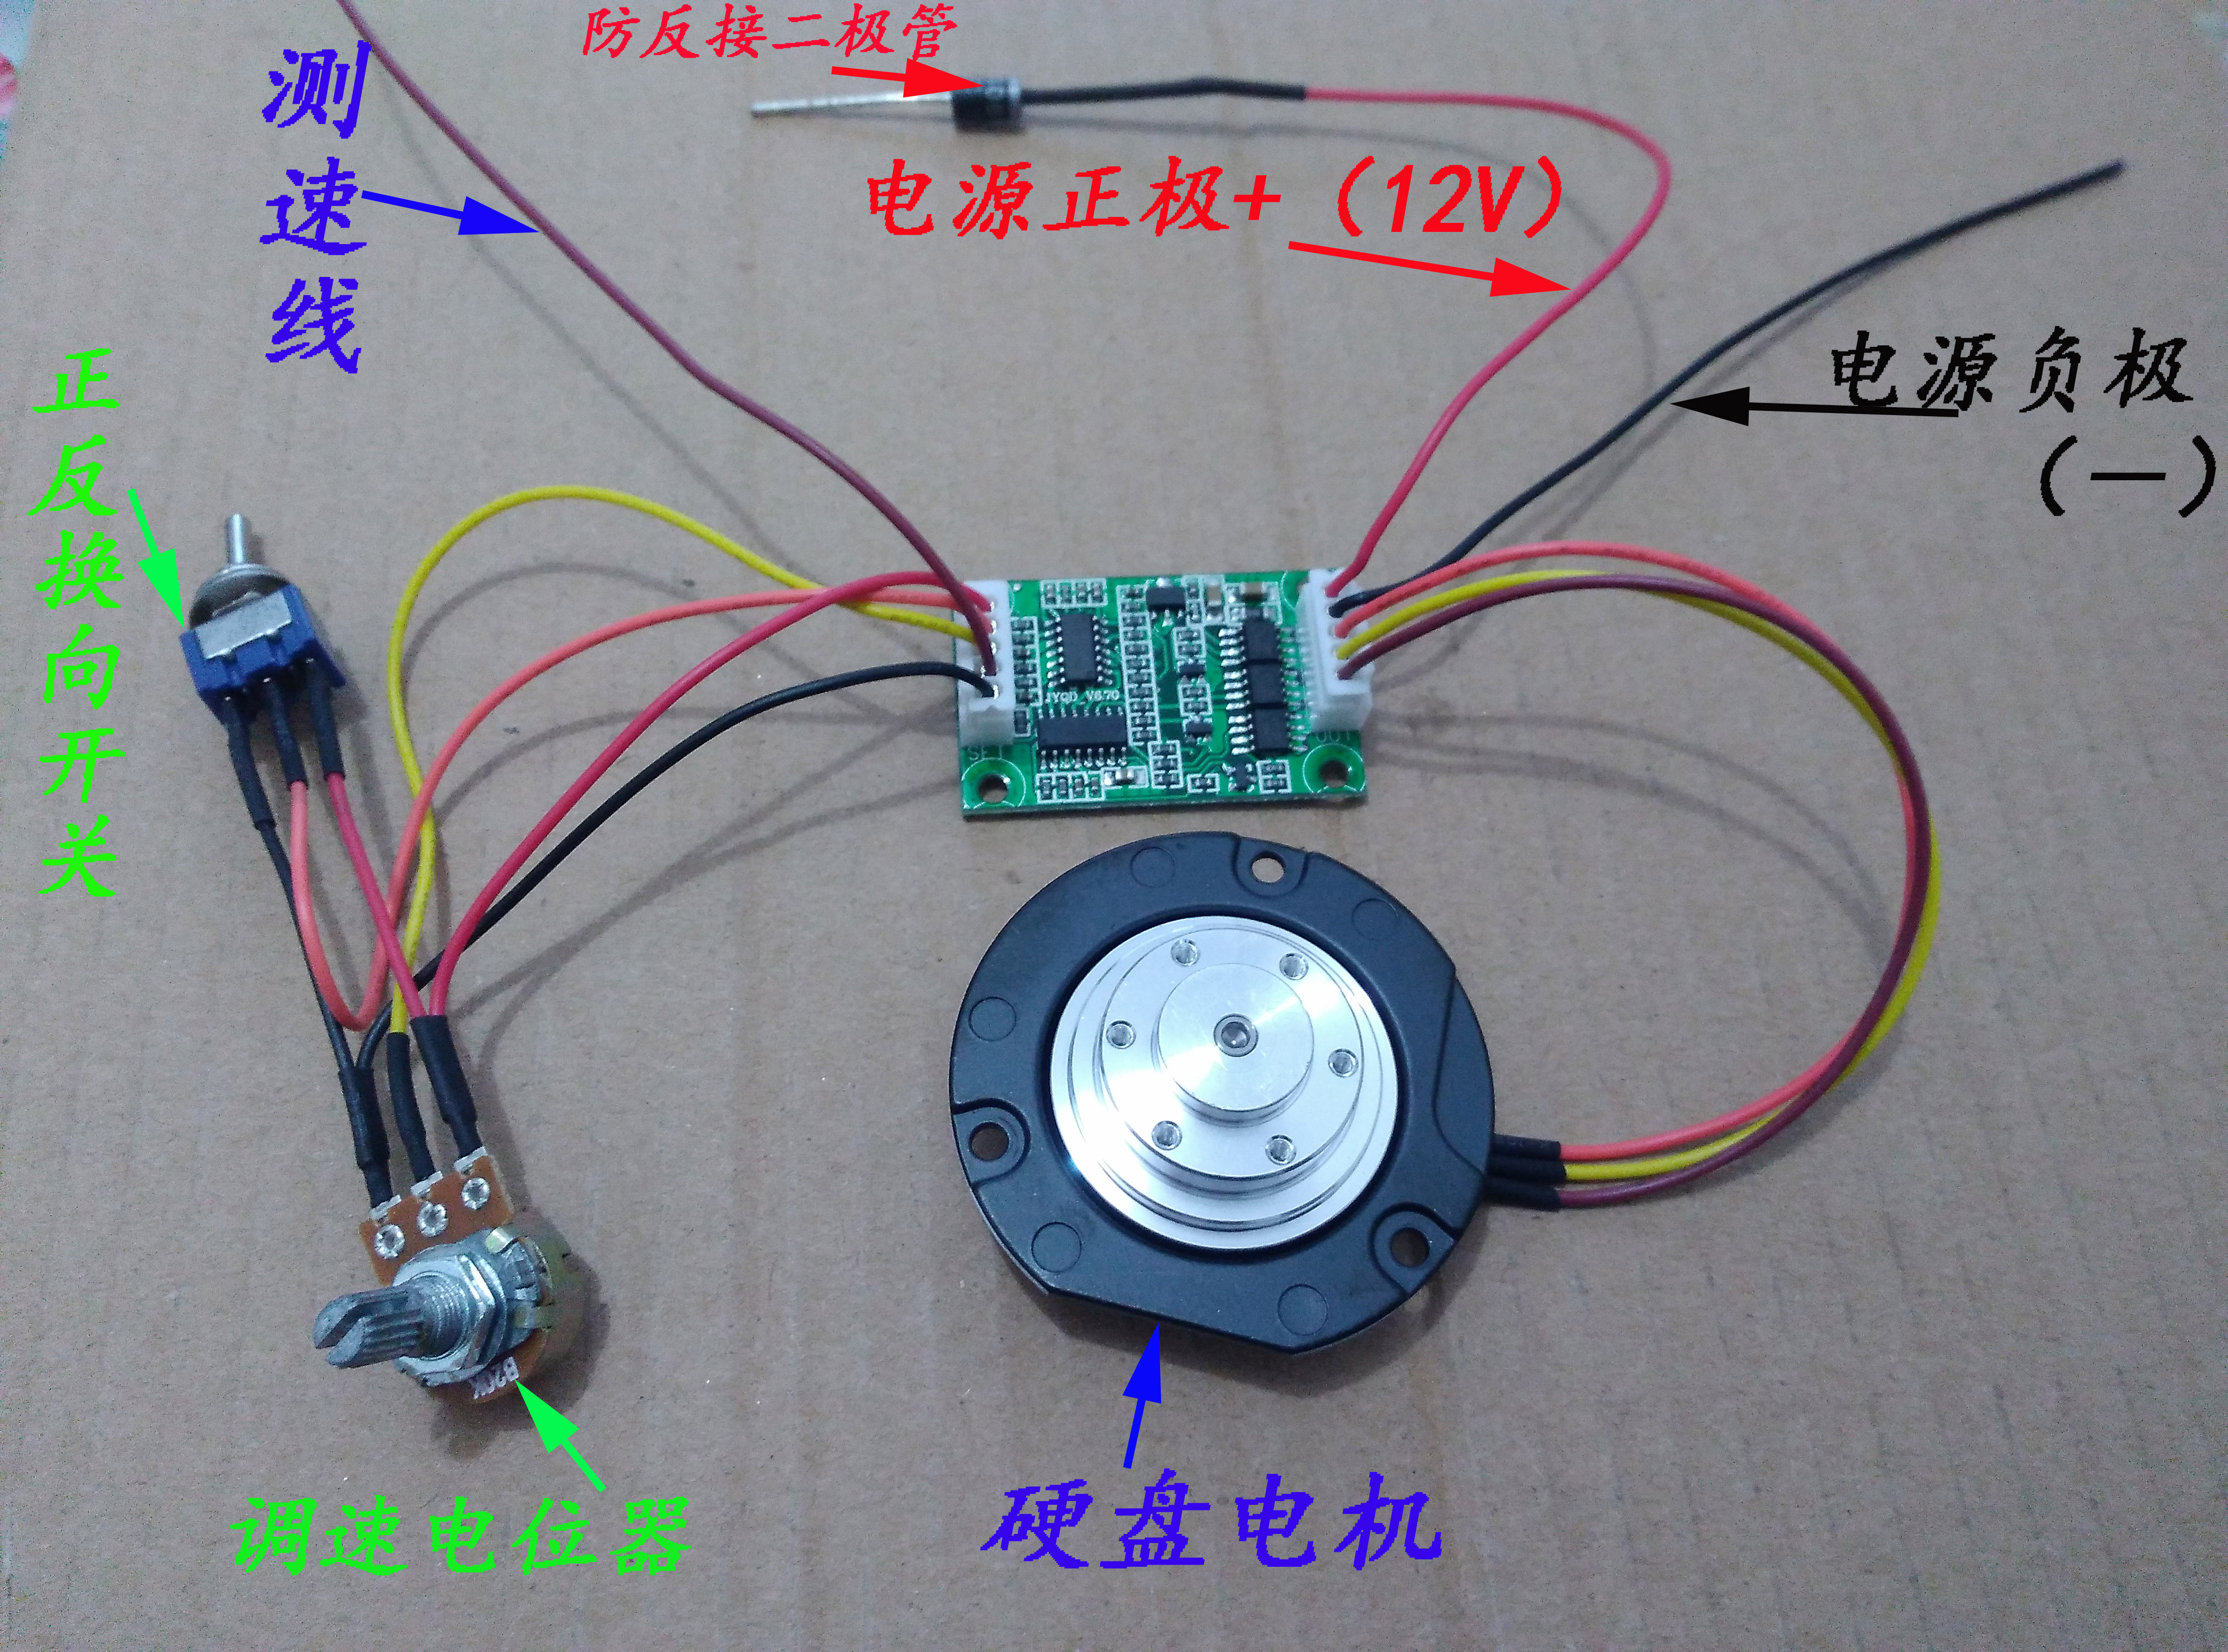 Hot Sale Dc Brushless Holzer Motor Drive Plate Hard Disk Controller Wiring With Positive And Negative Speed Regulation